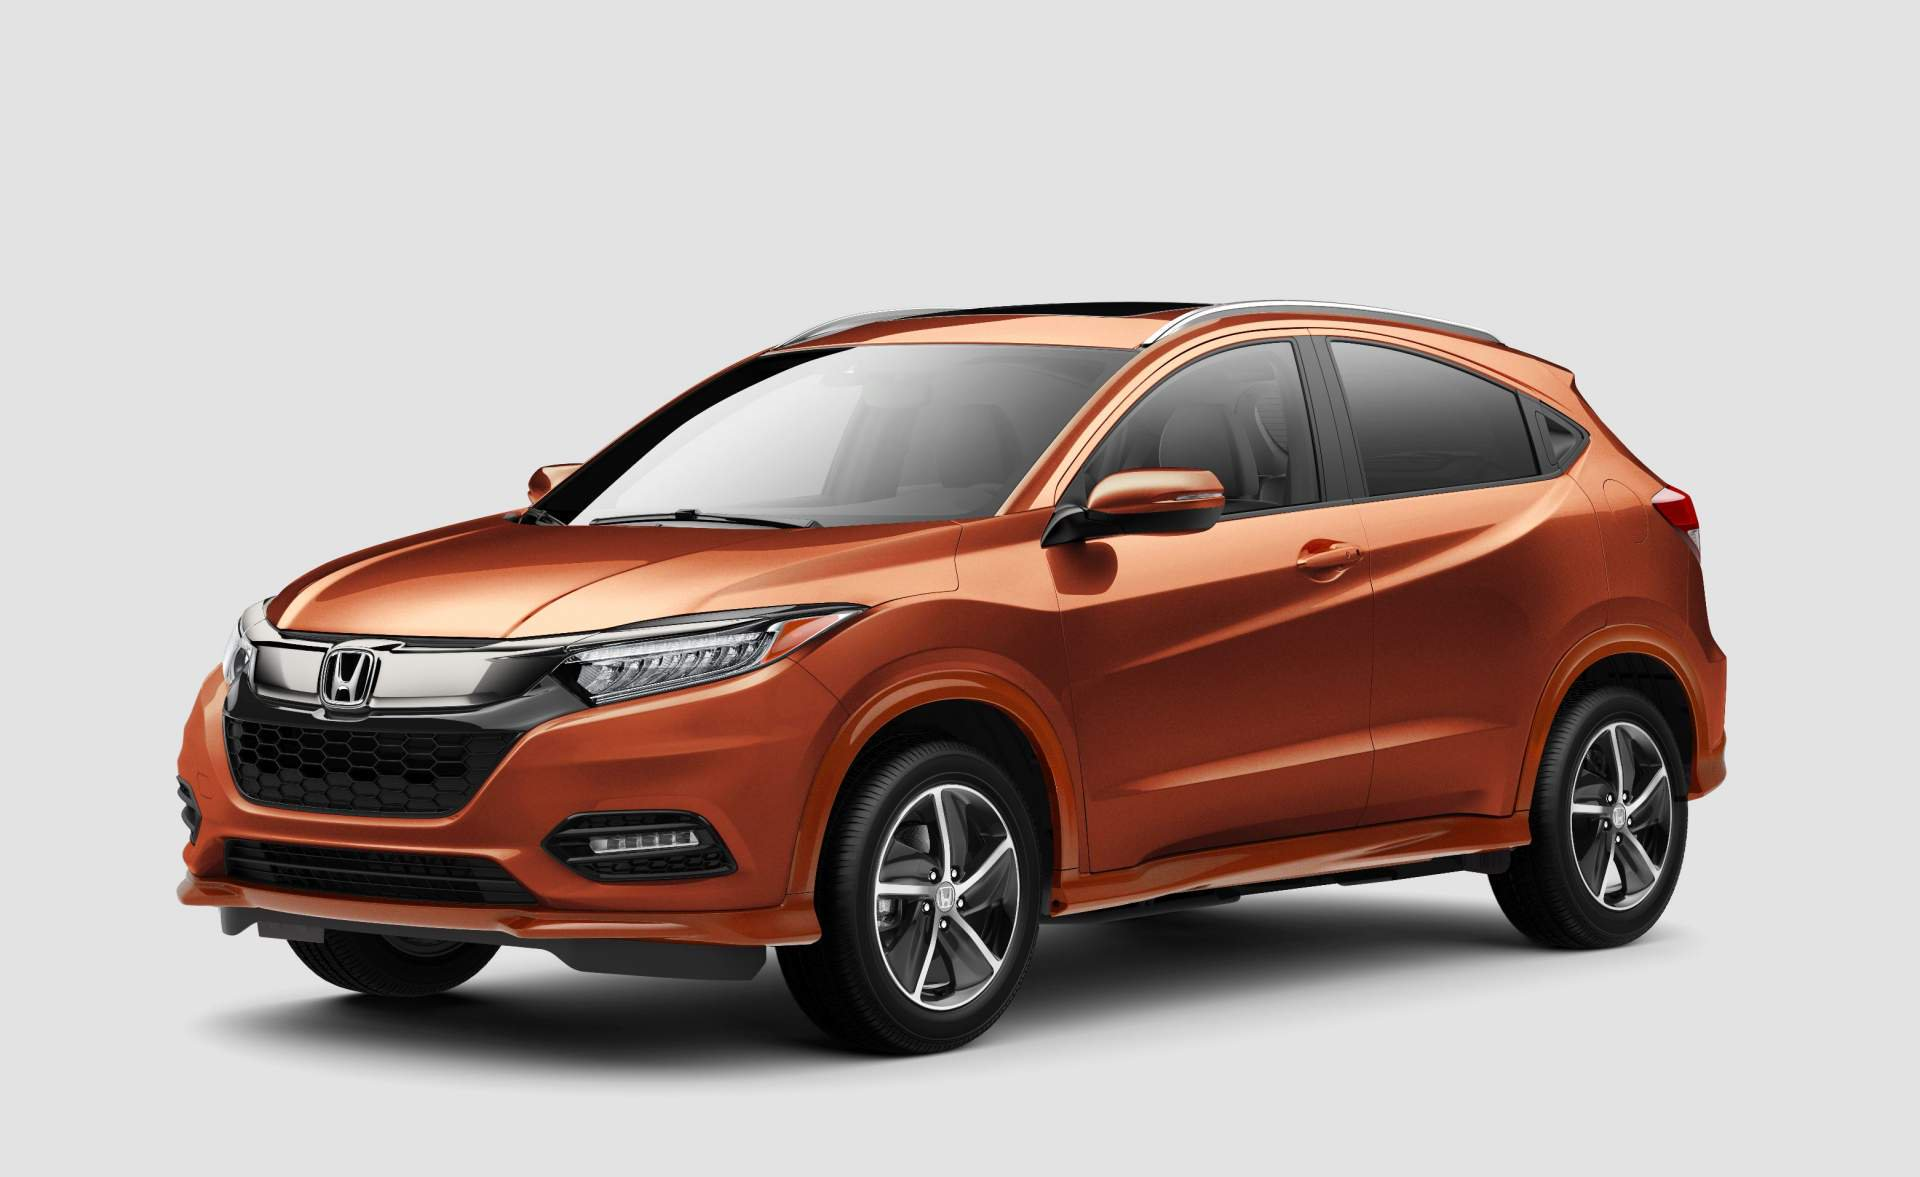 2019 Honda HR-V: Updates, Design, Price >> 2019 Honda Hr V Pricing Announced Loses Manual Gearbox Autoevolution